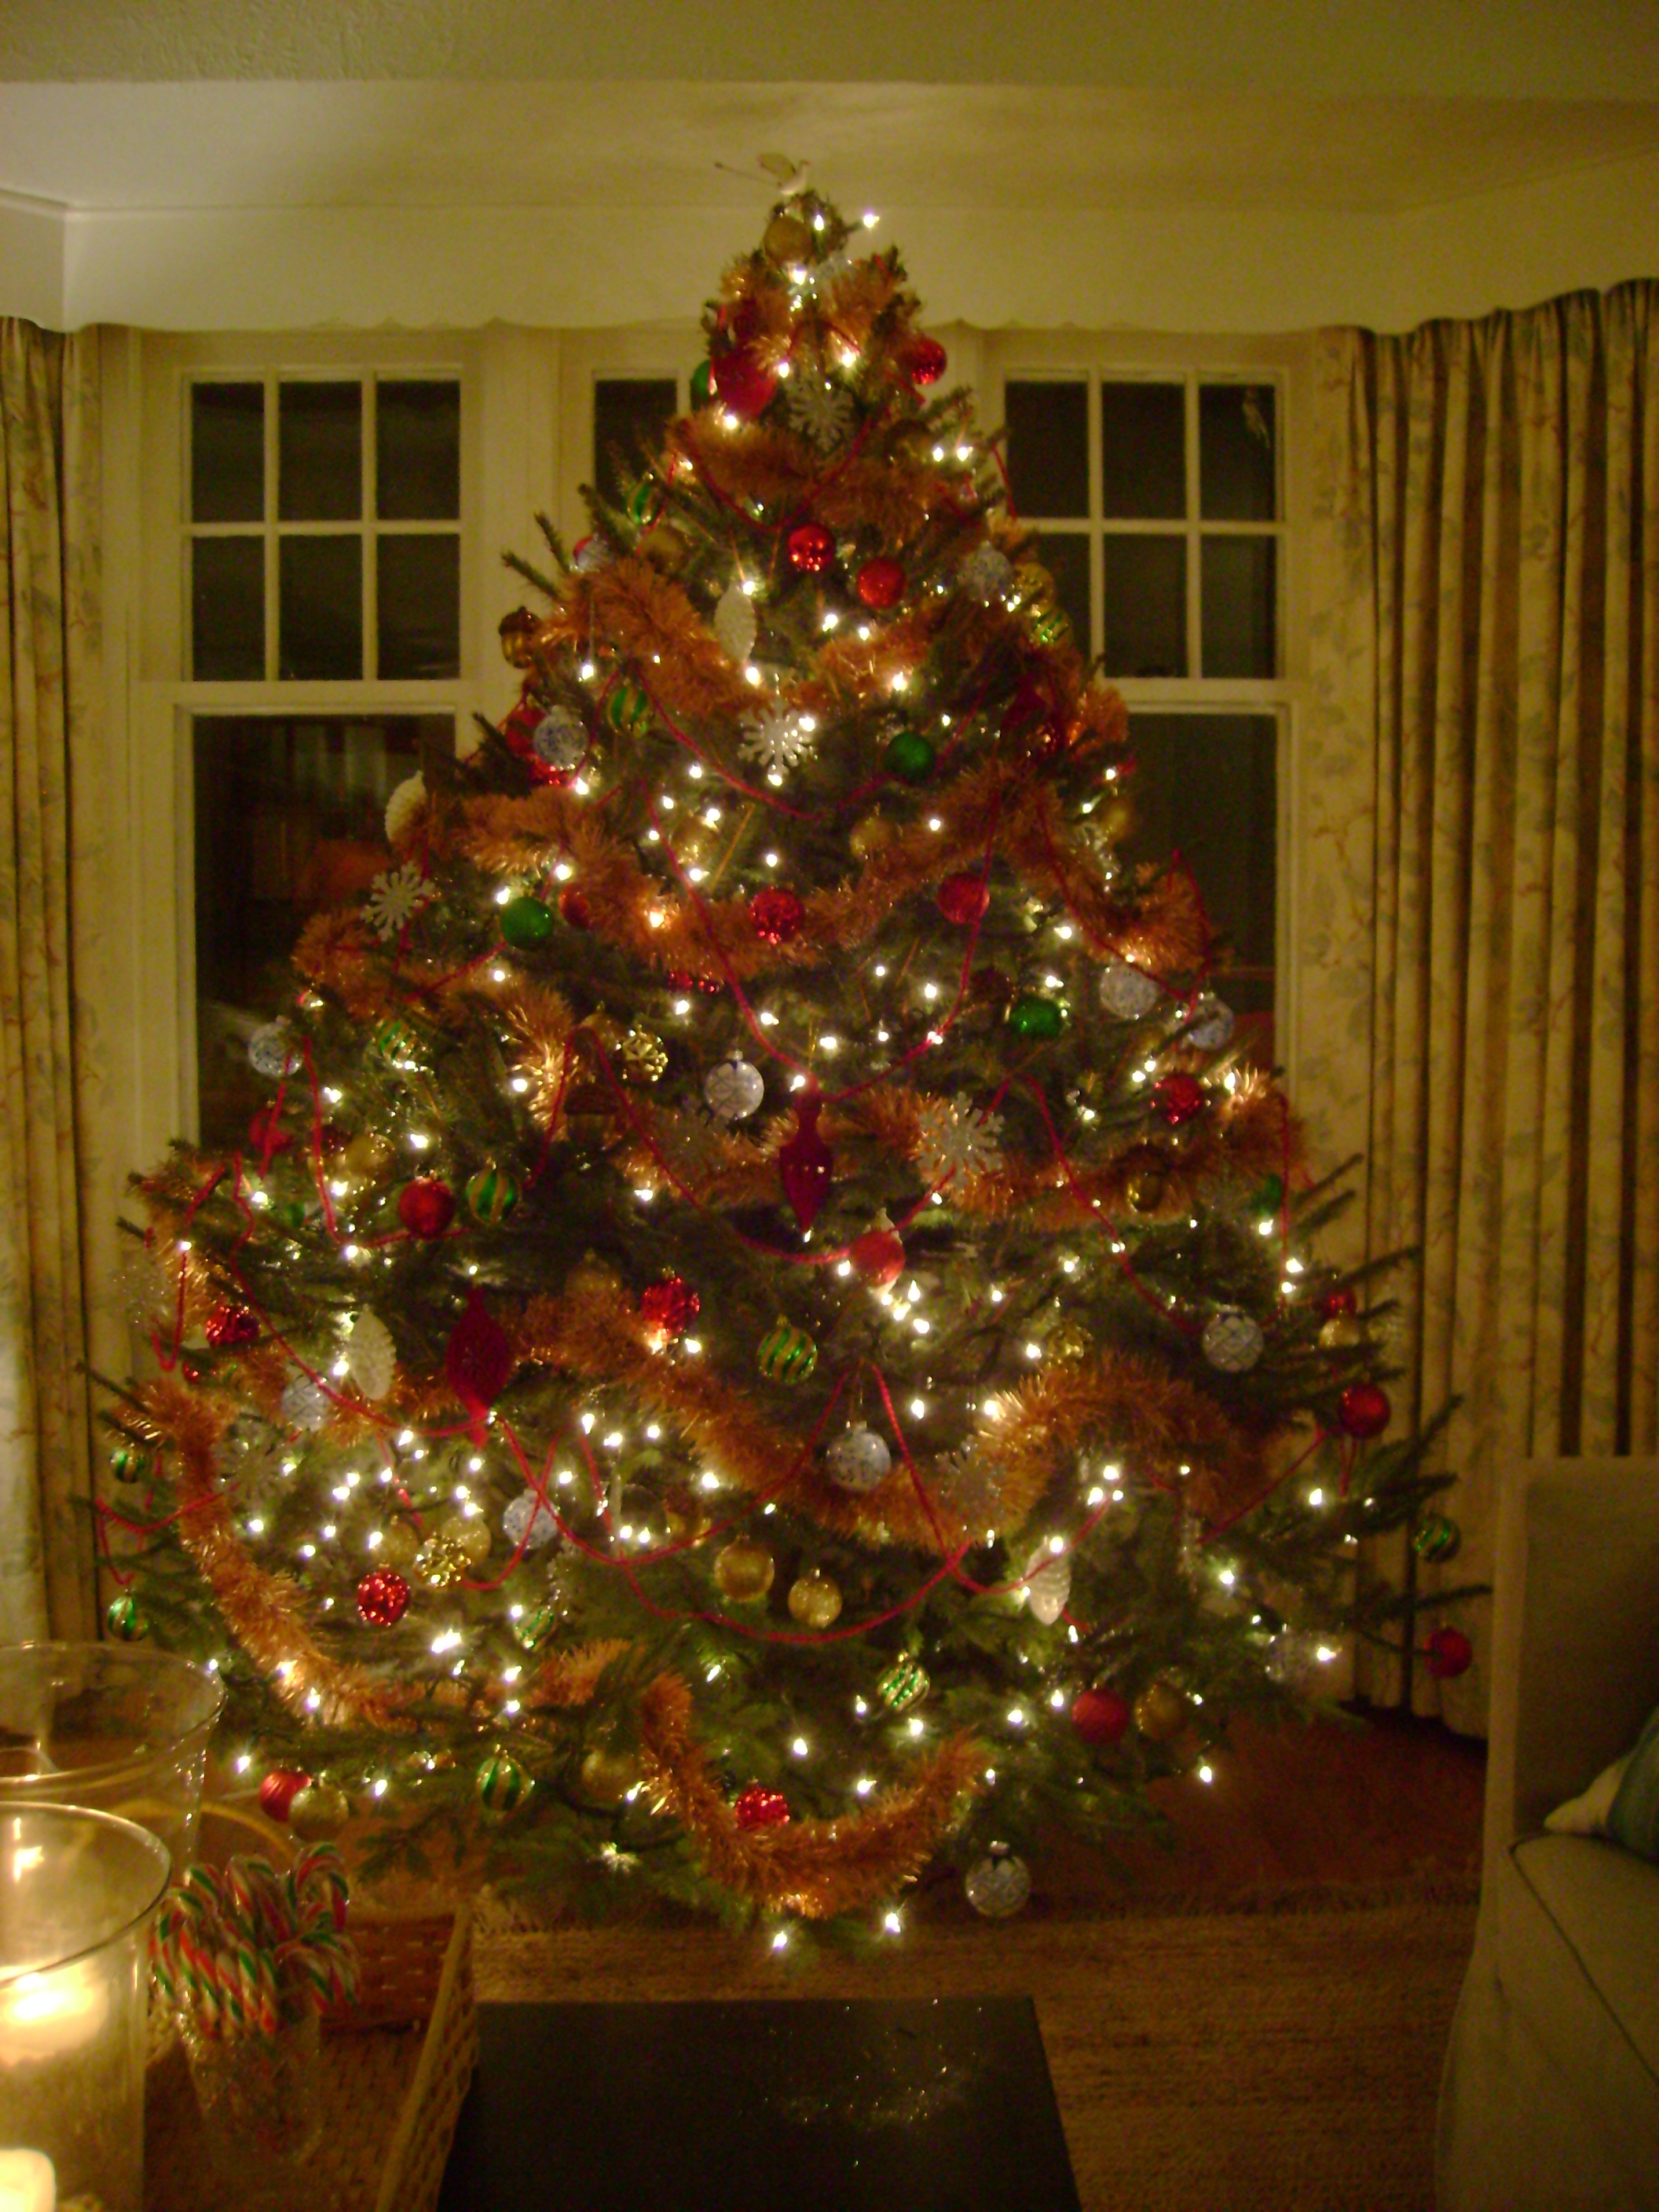 Decorating christmas trees michael penney style How to decorate a christmas tree without tinsel